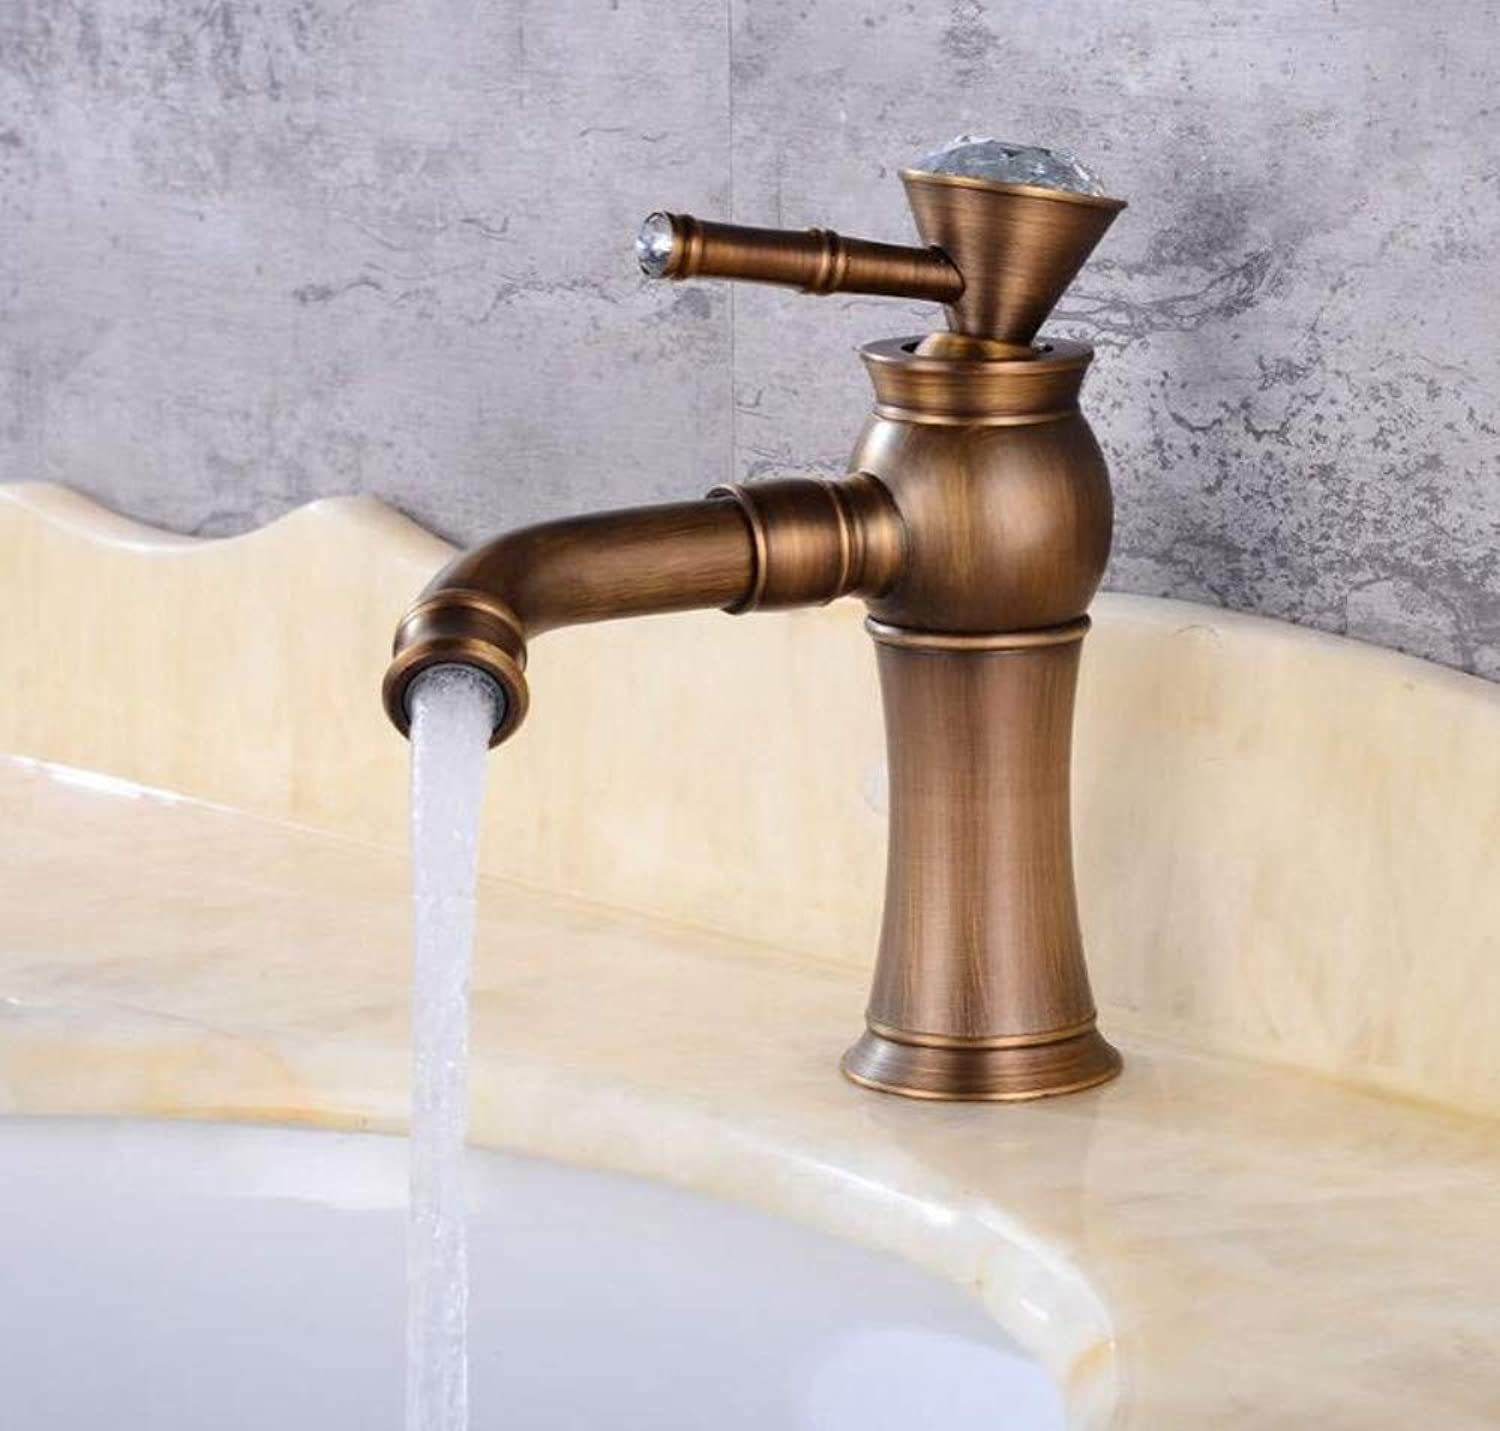 Mixer Basin Taps redating Water Cold Water Brass Sink Mixer Tap for Lavatory Bathroom Vanity Sink Faucet